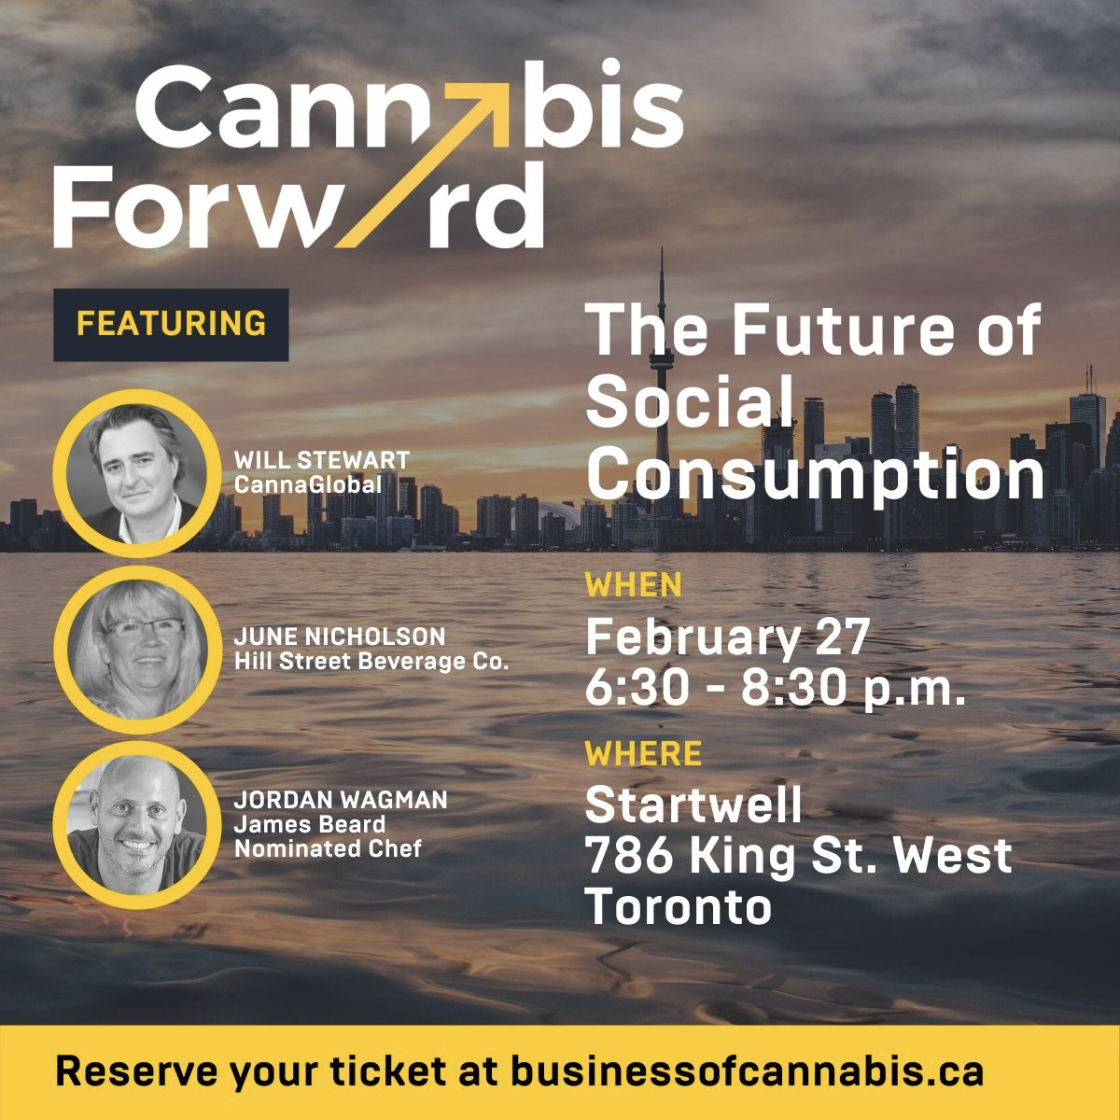 https://www.businessofcannabis.ca/event/cannabis-forward-toronto